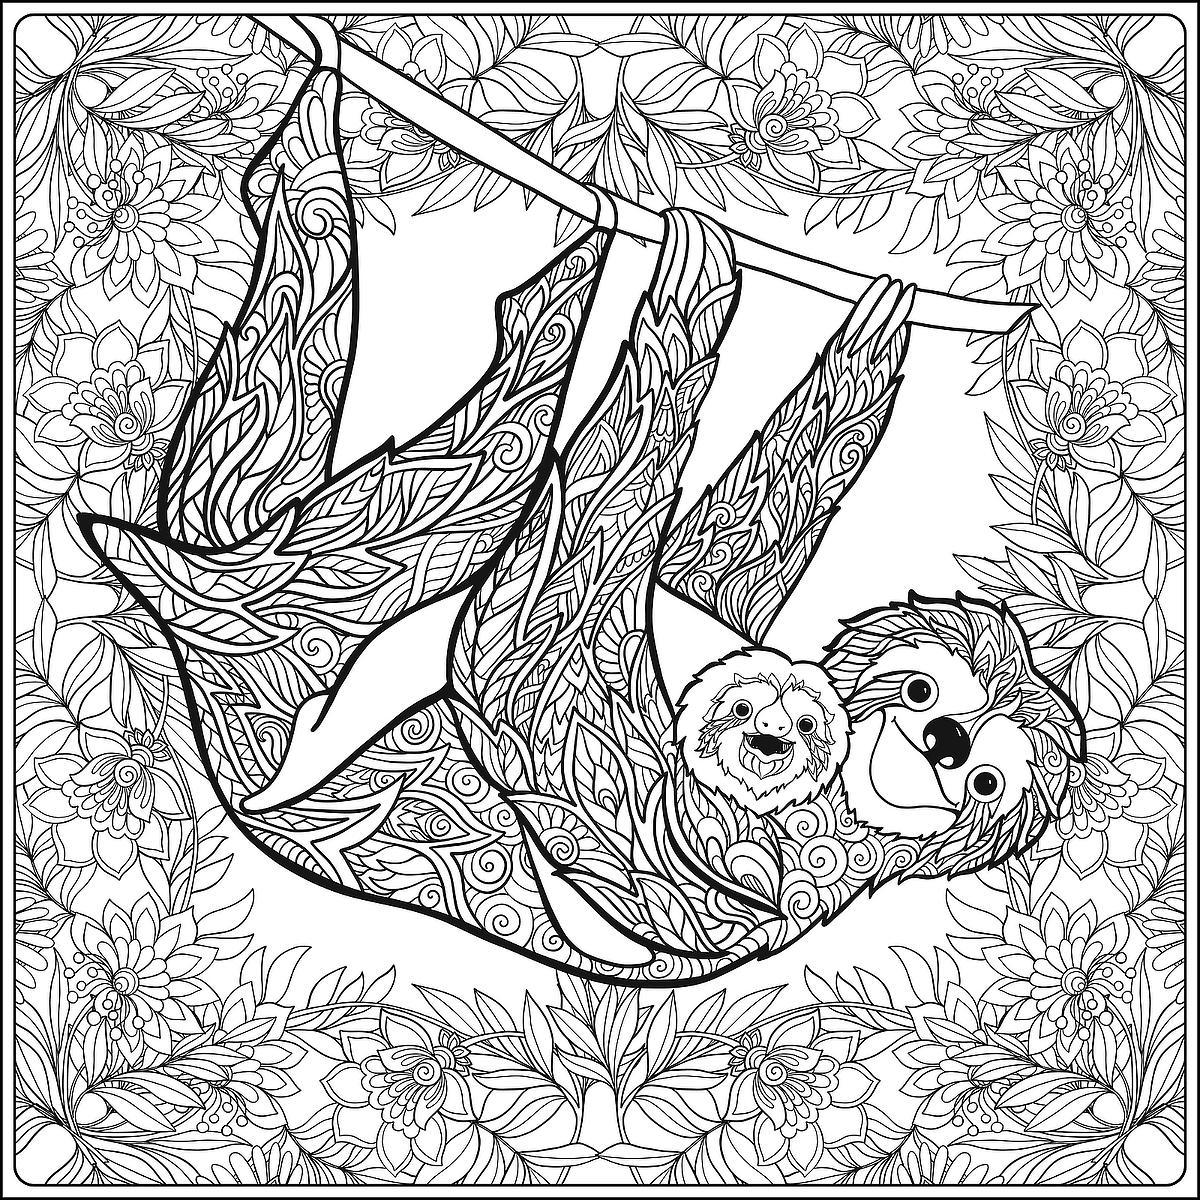 sloth pictures to print sloth coloring pages realistic three toed sloth free sloth print pictures to